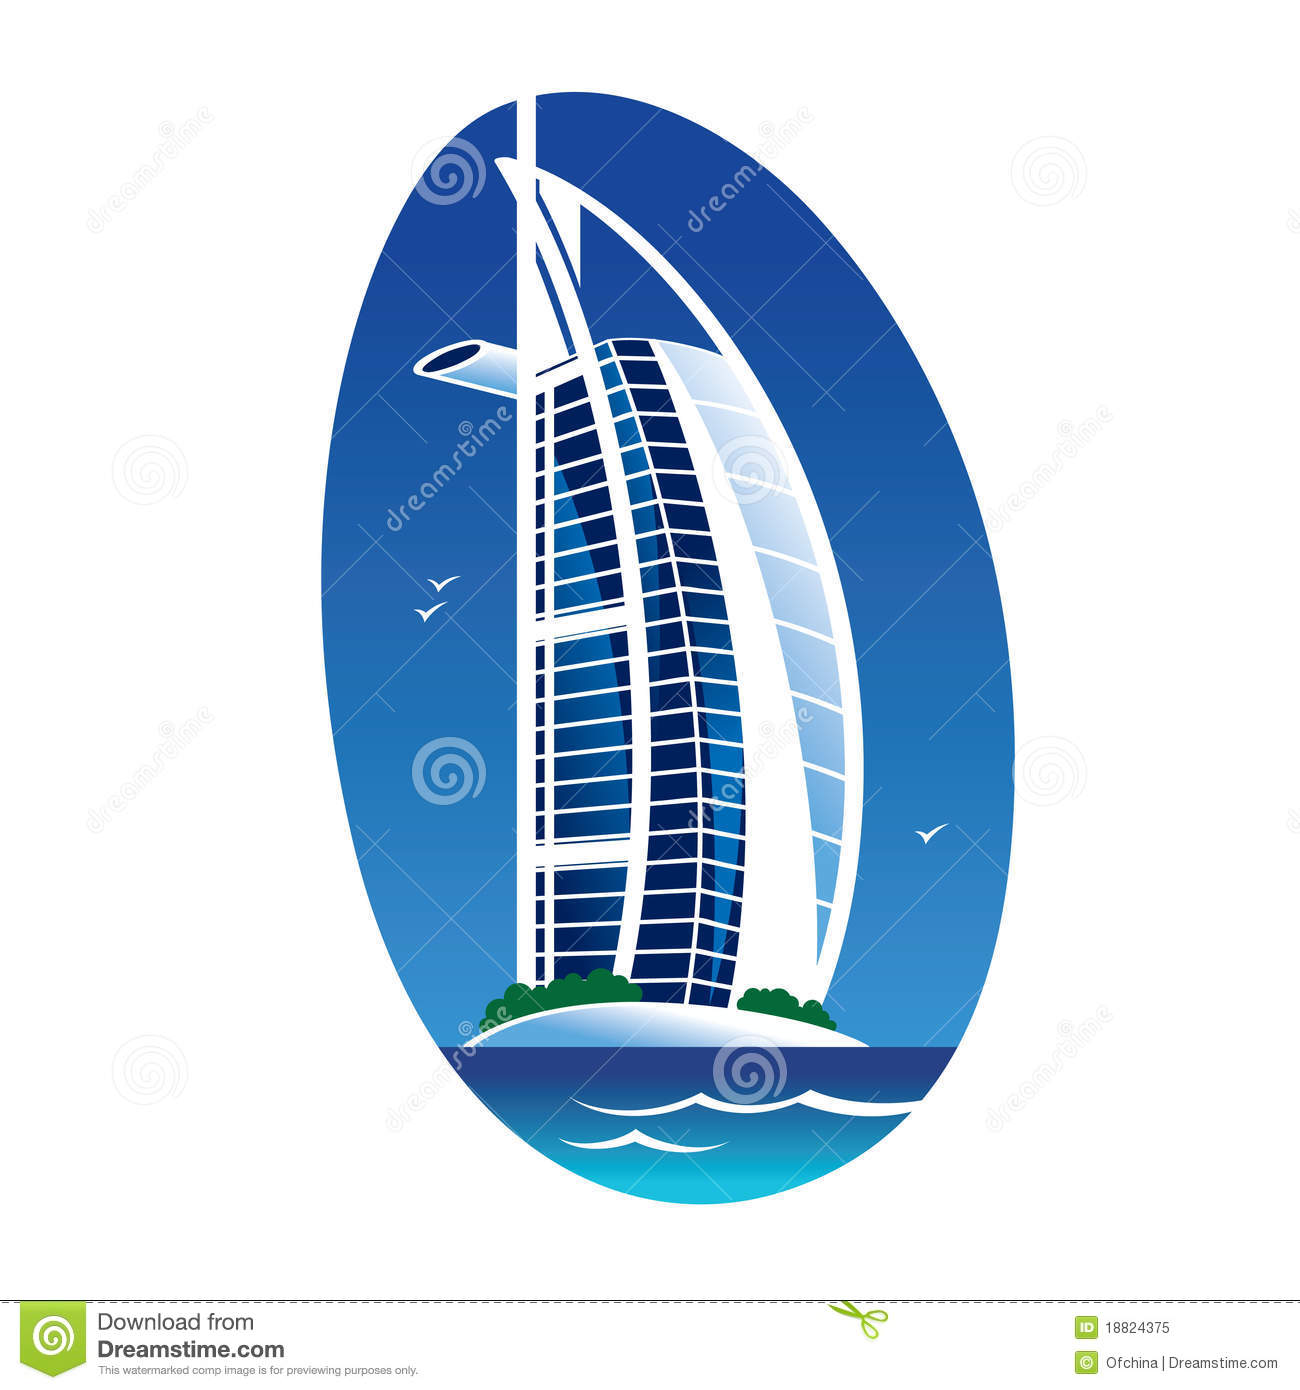 1300x1390 Collection Of Dubai Clipart Image High Quality, Free